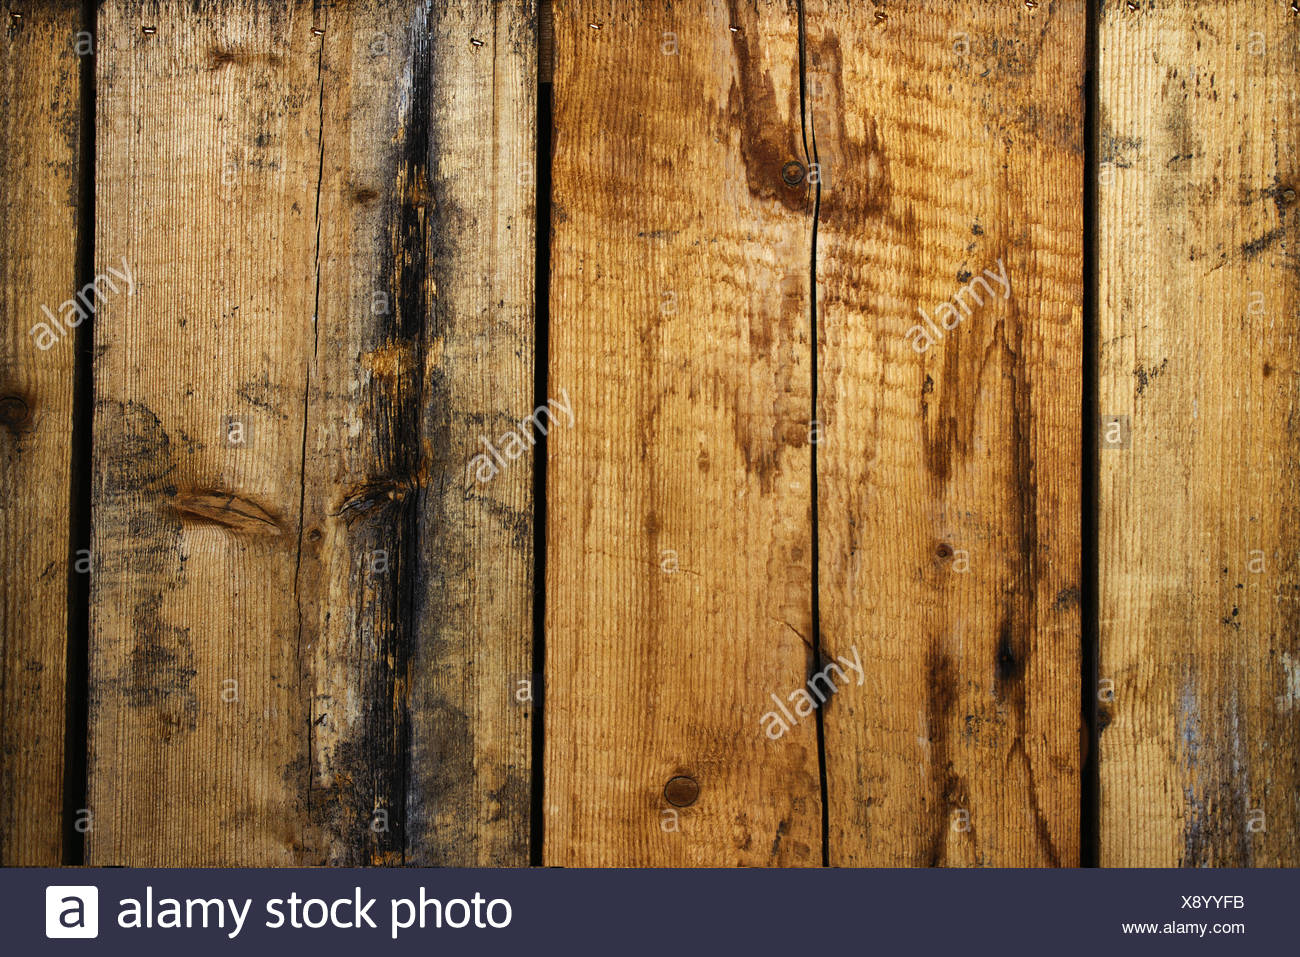 Rough wooden planks texture - Stock Image